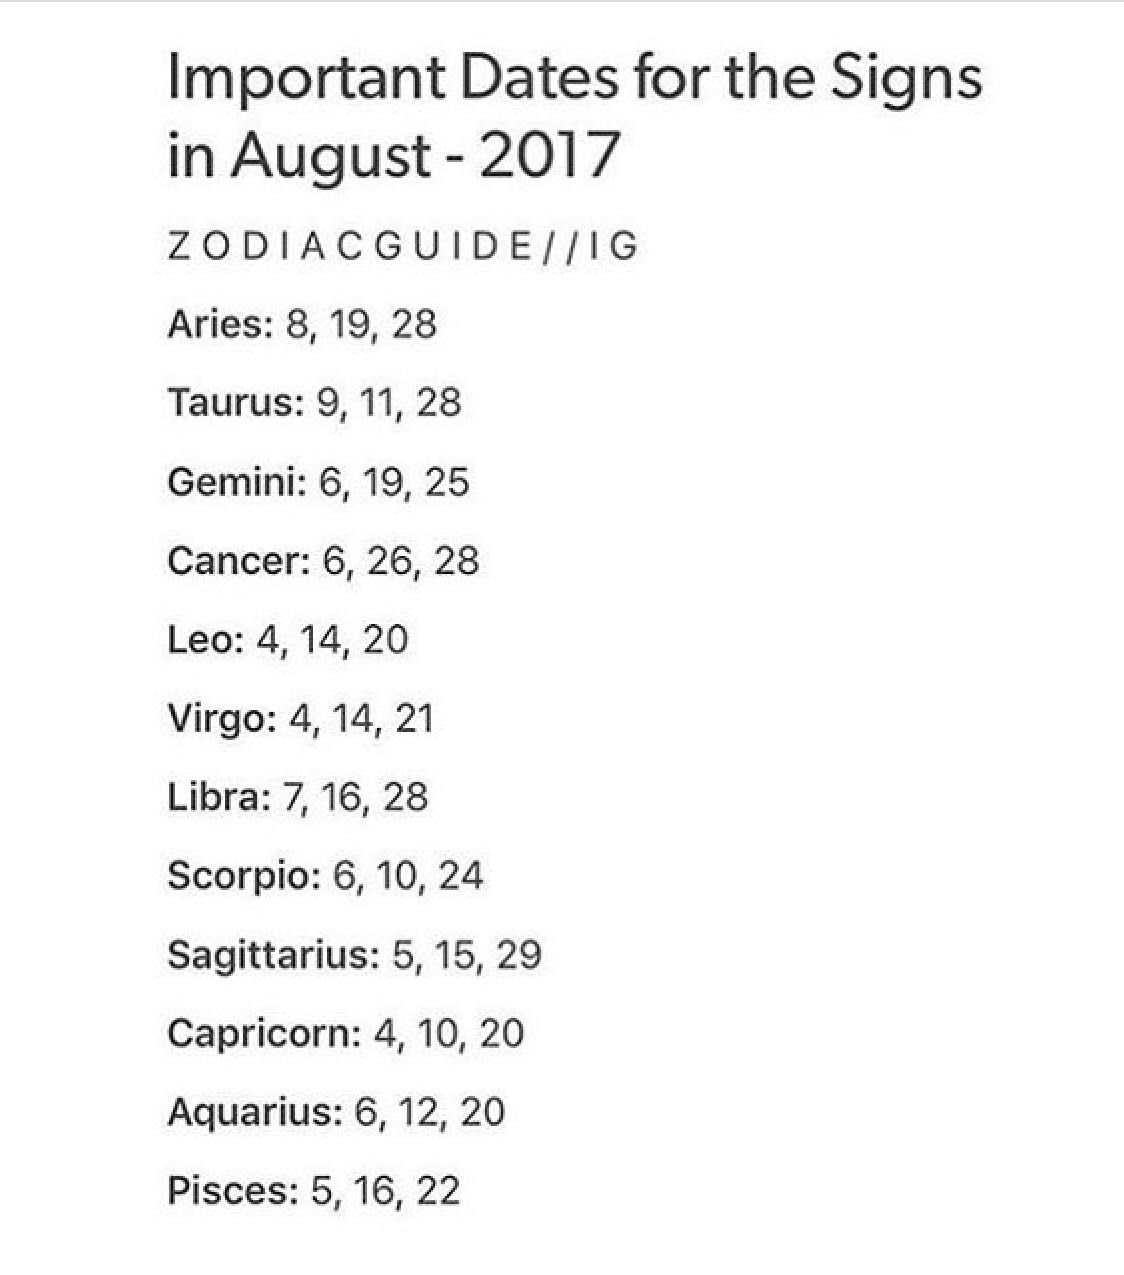 The Book Of Zodiac Signs Important Dates For The Signs In August